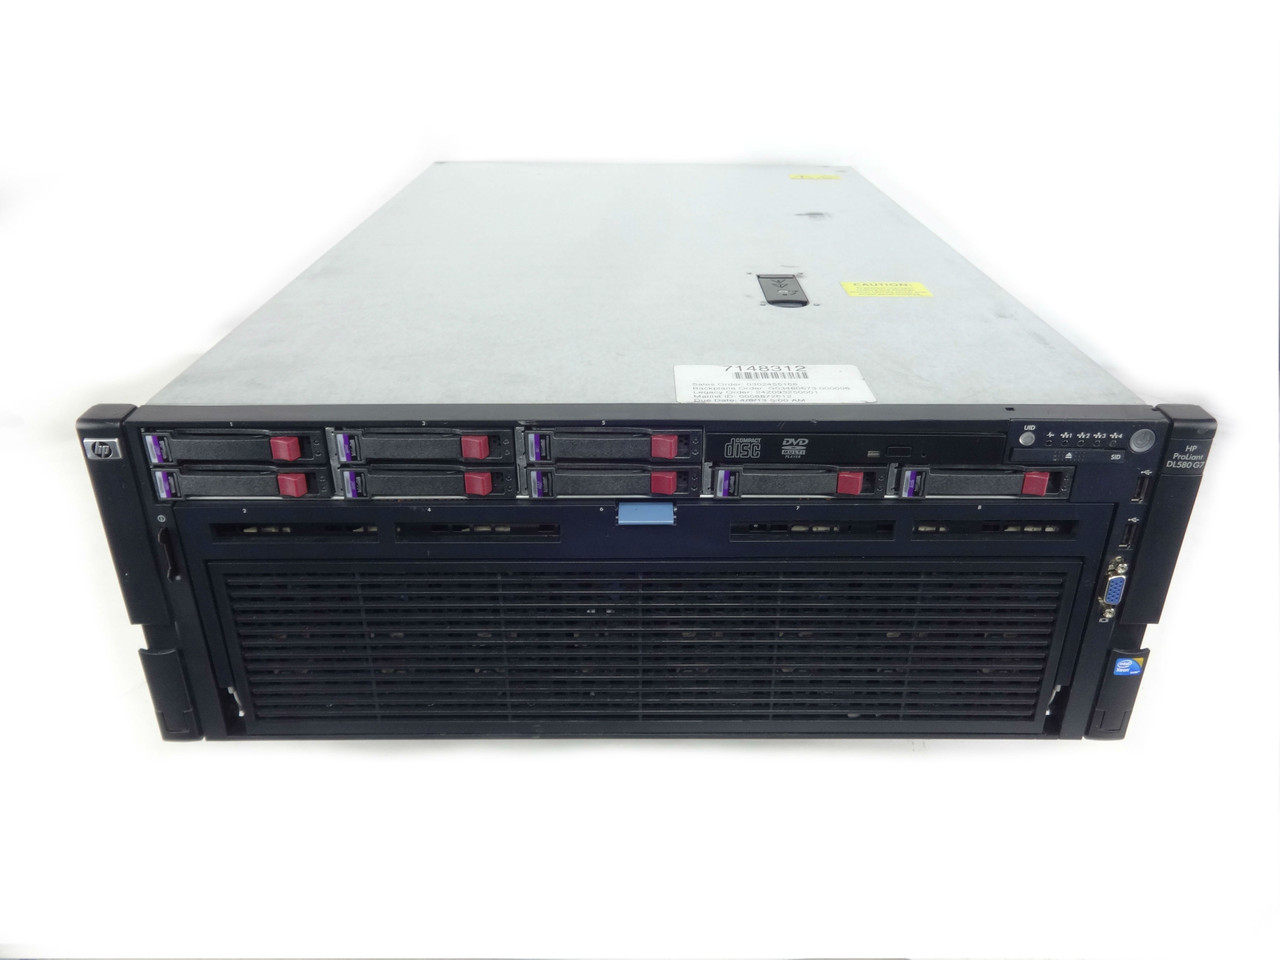 "Proliant DL580 G7 8x 2.5"" Server"